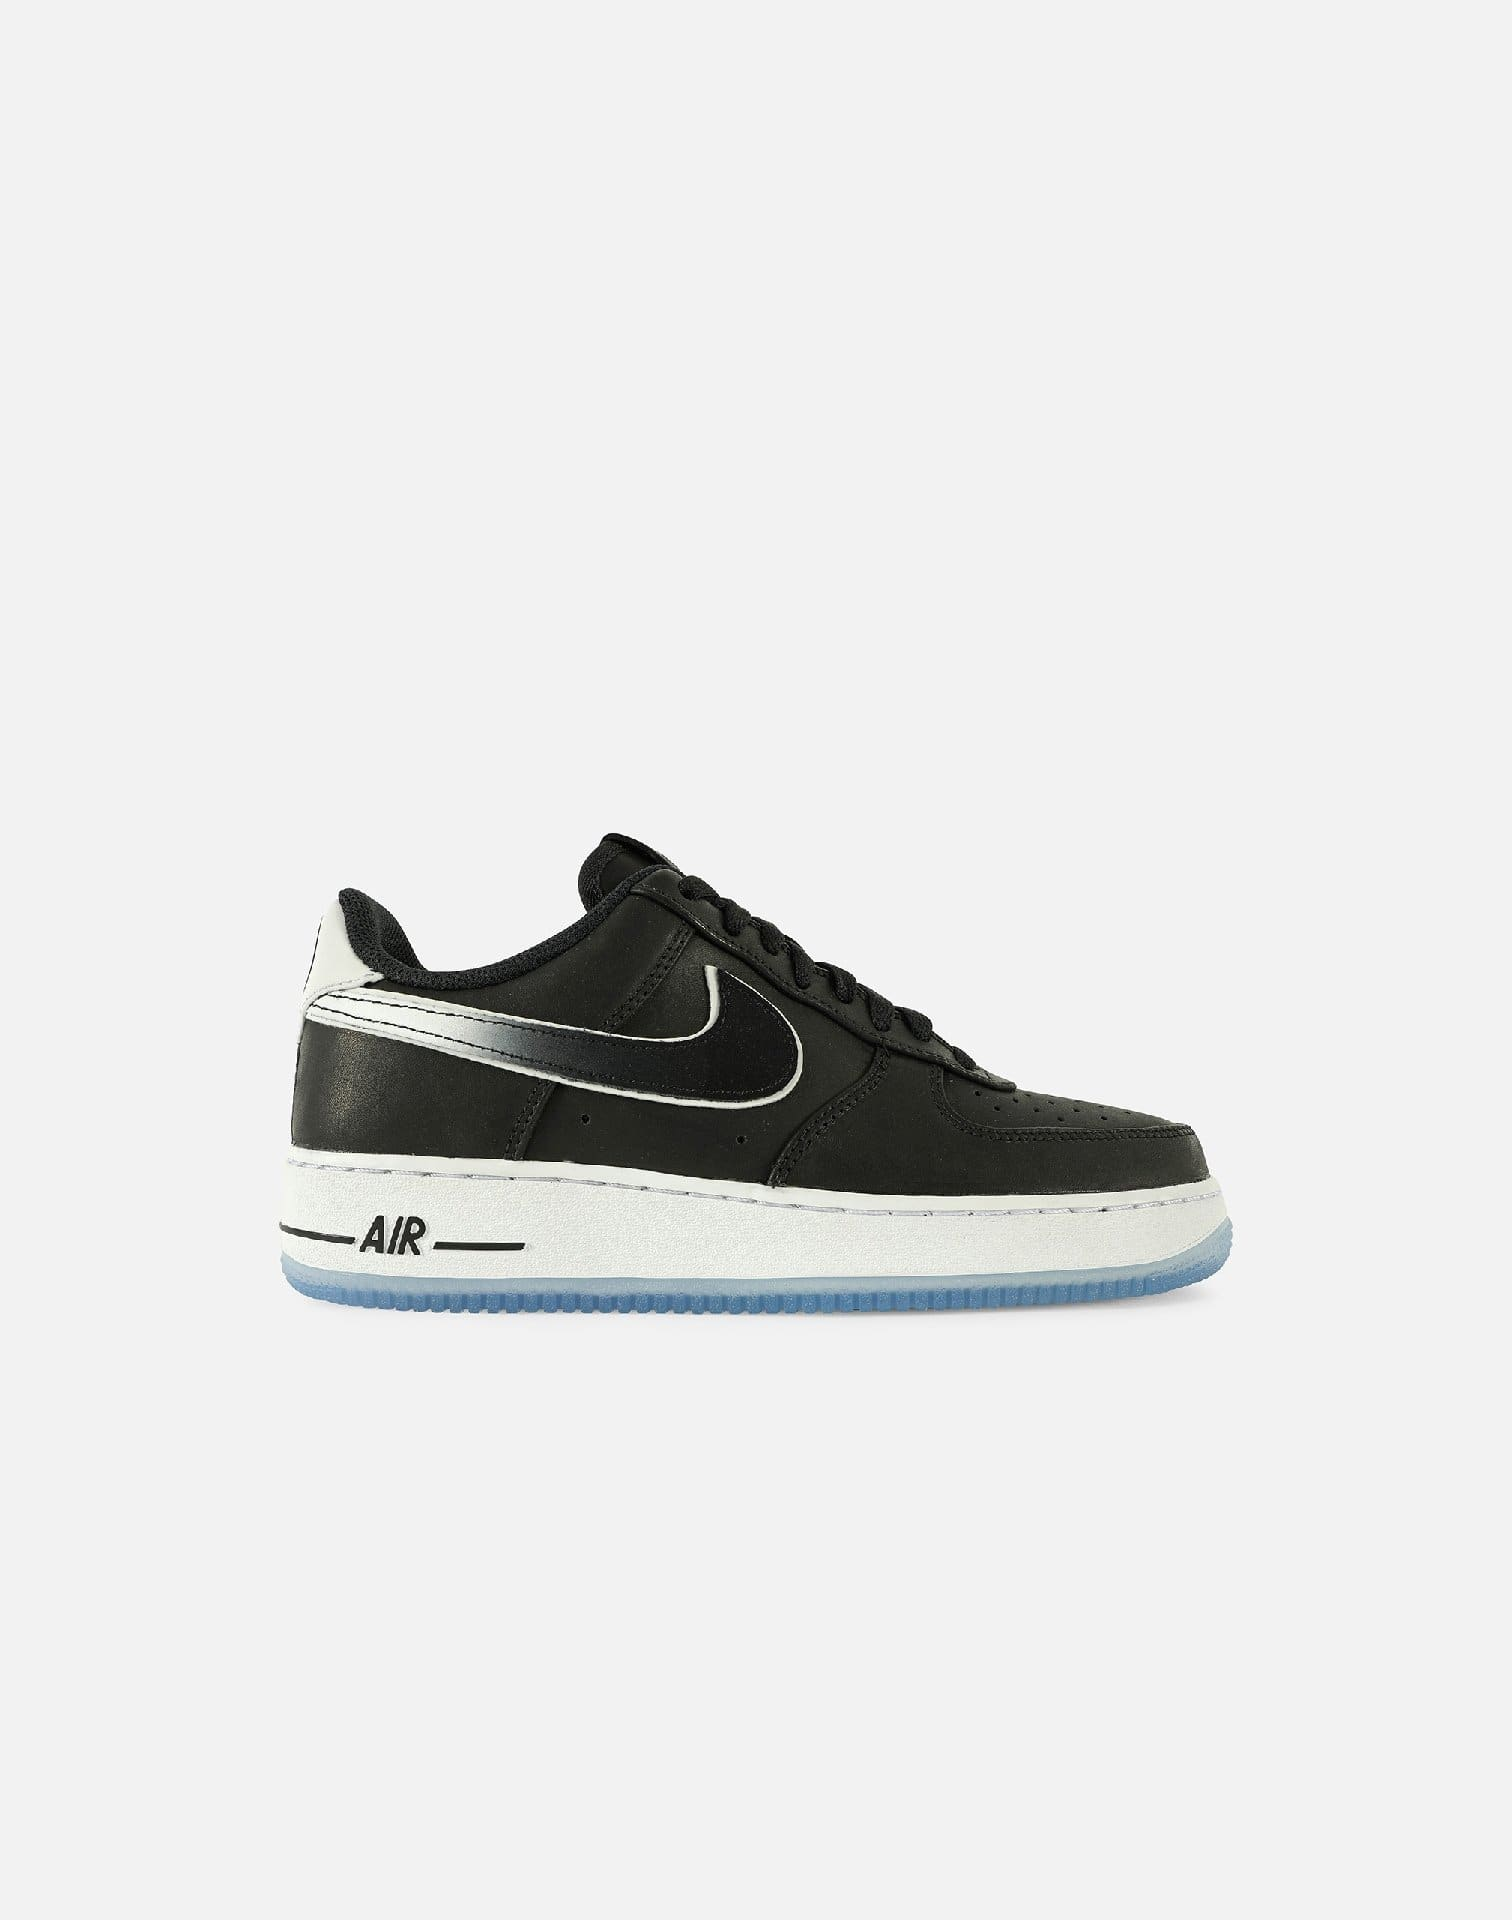 AIR FORCE 1 '07 LOW CK QS GRADE SCHOOL